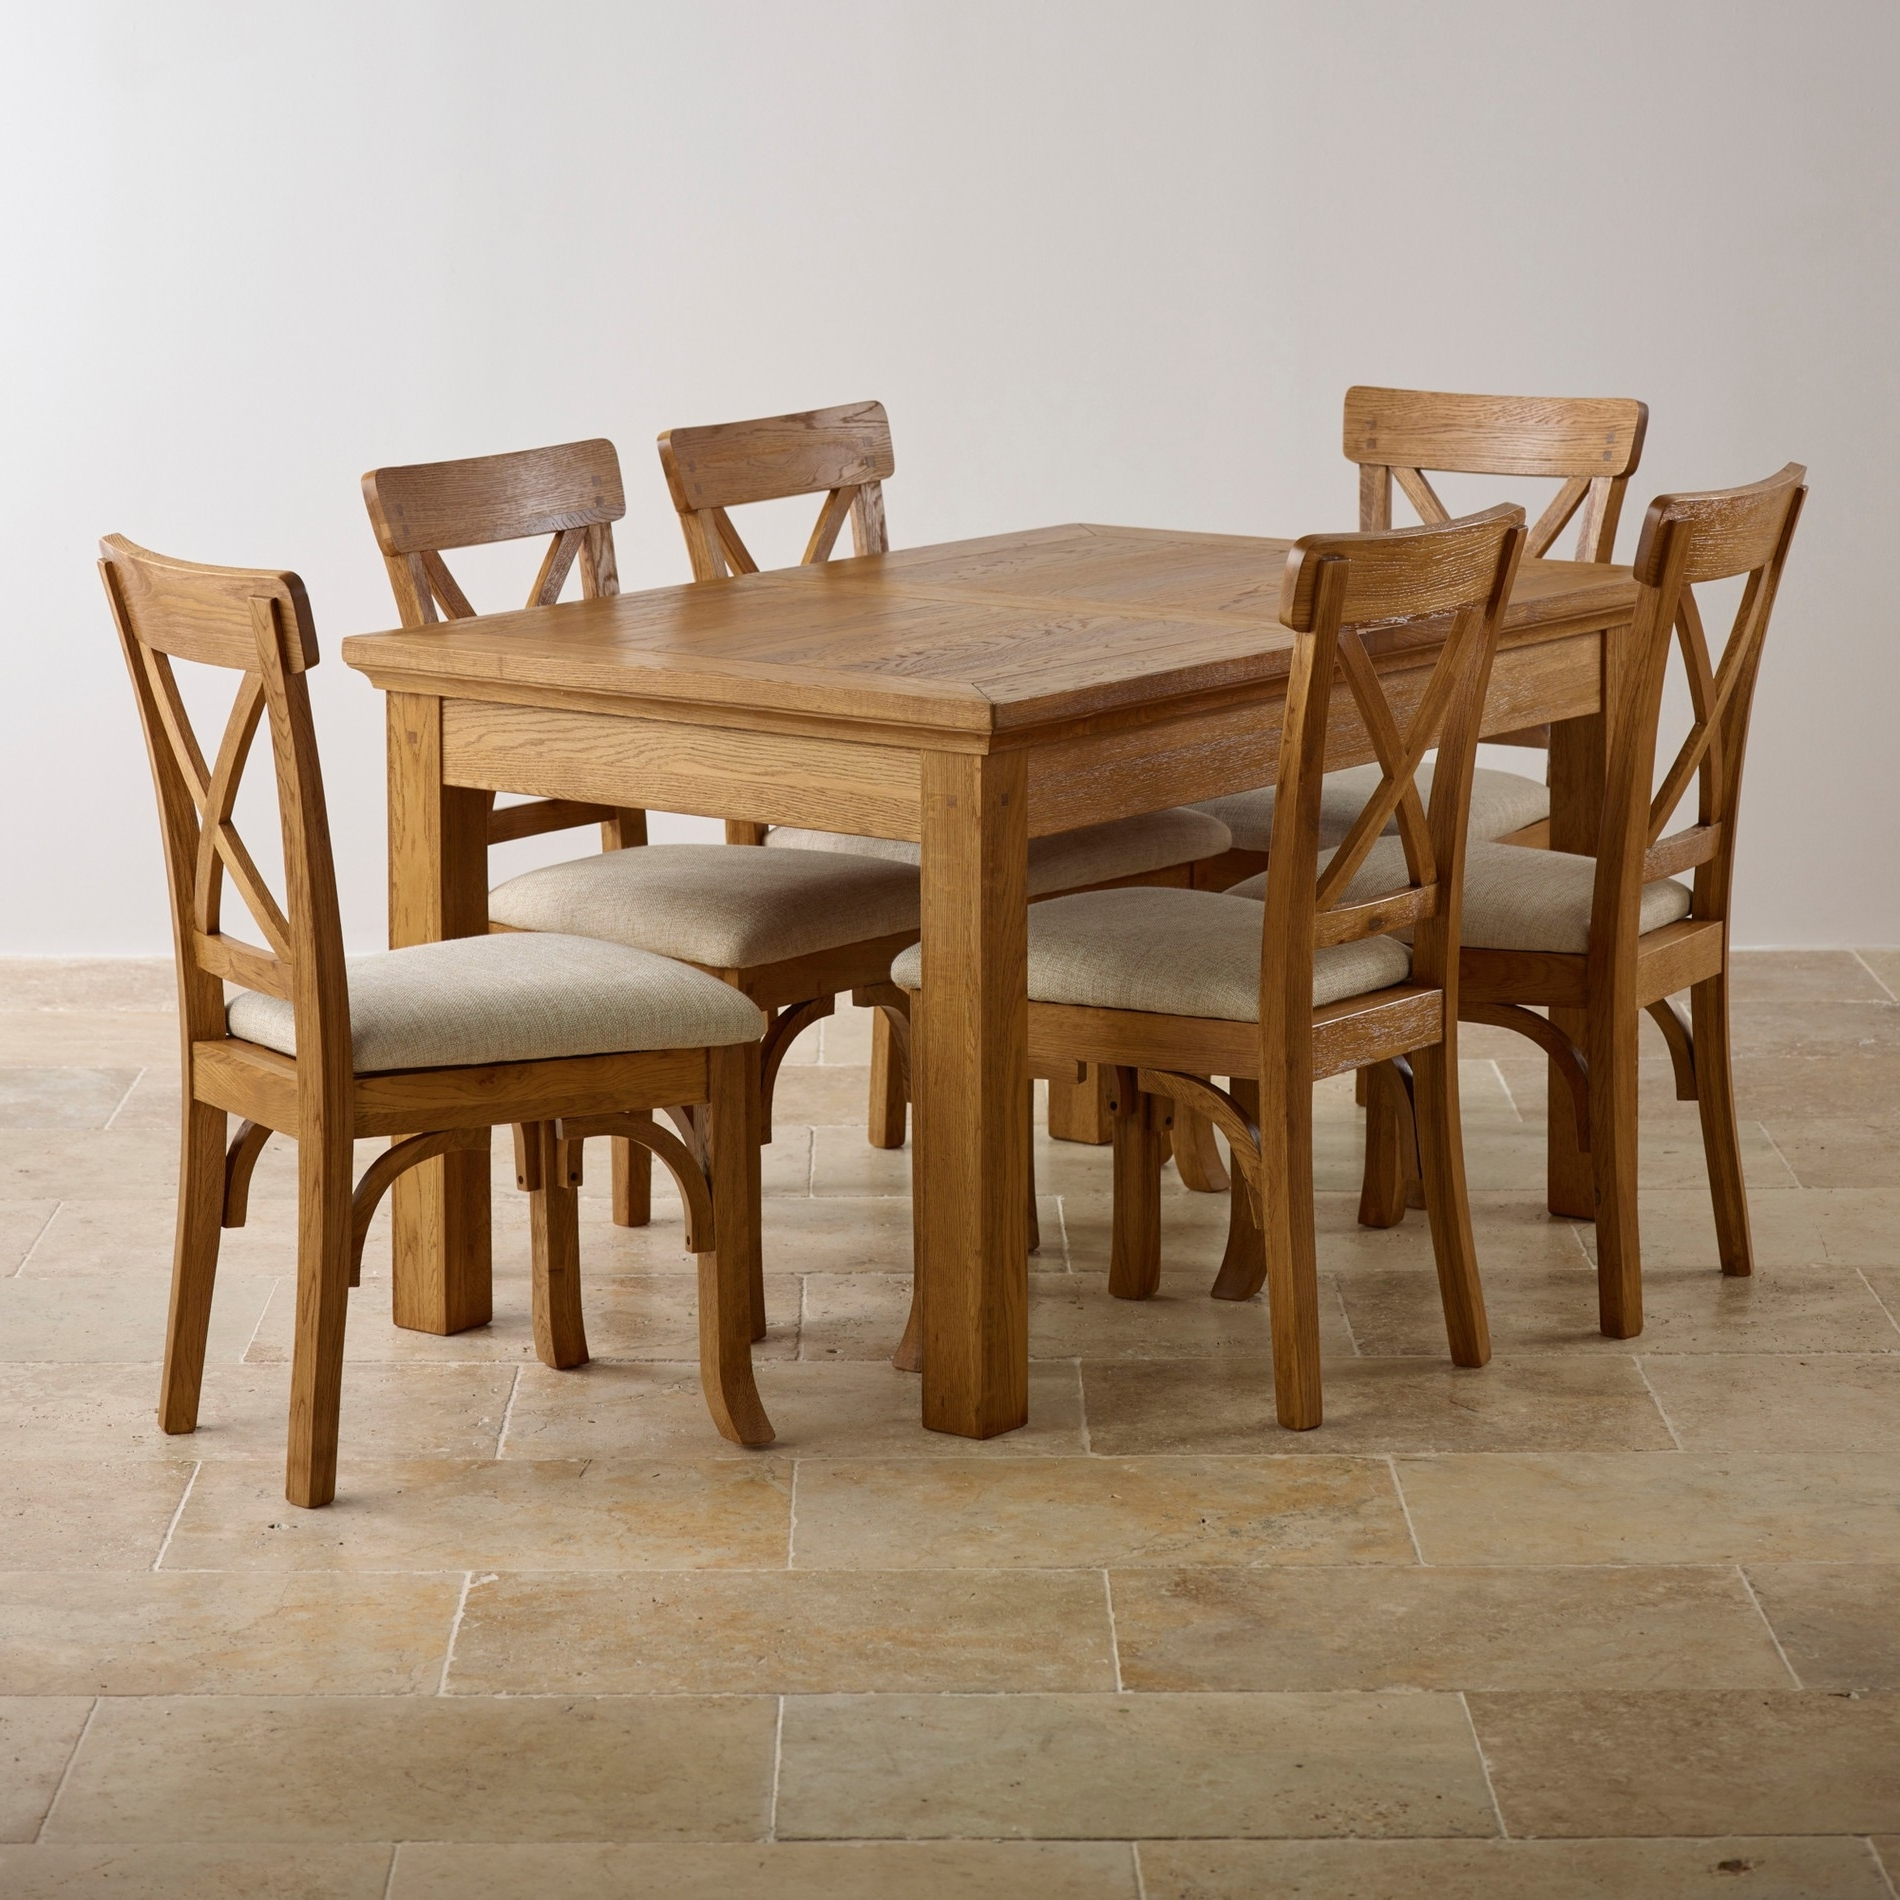 Recent The 28 Awesome 6 Seater Extendable Dining Table – Welovedandelion Throughout Extendable Dining Tables 6 Chairs (View 21 of 25)